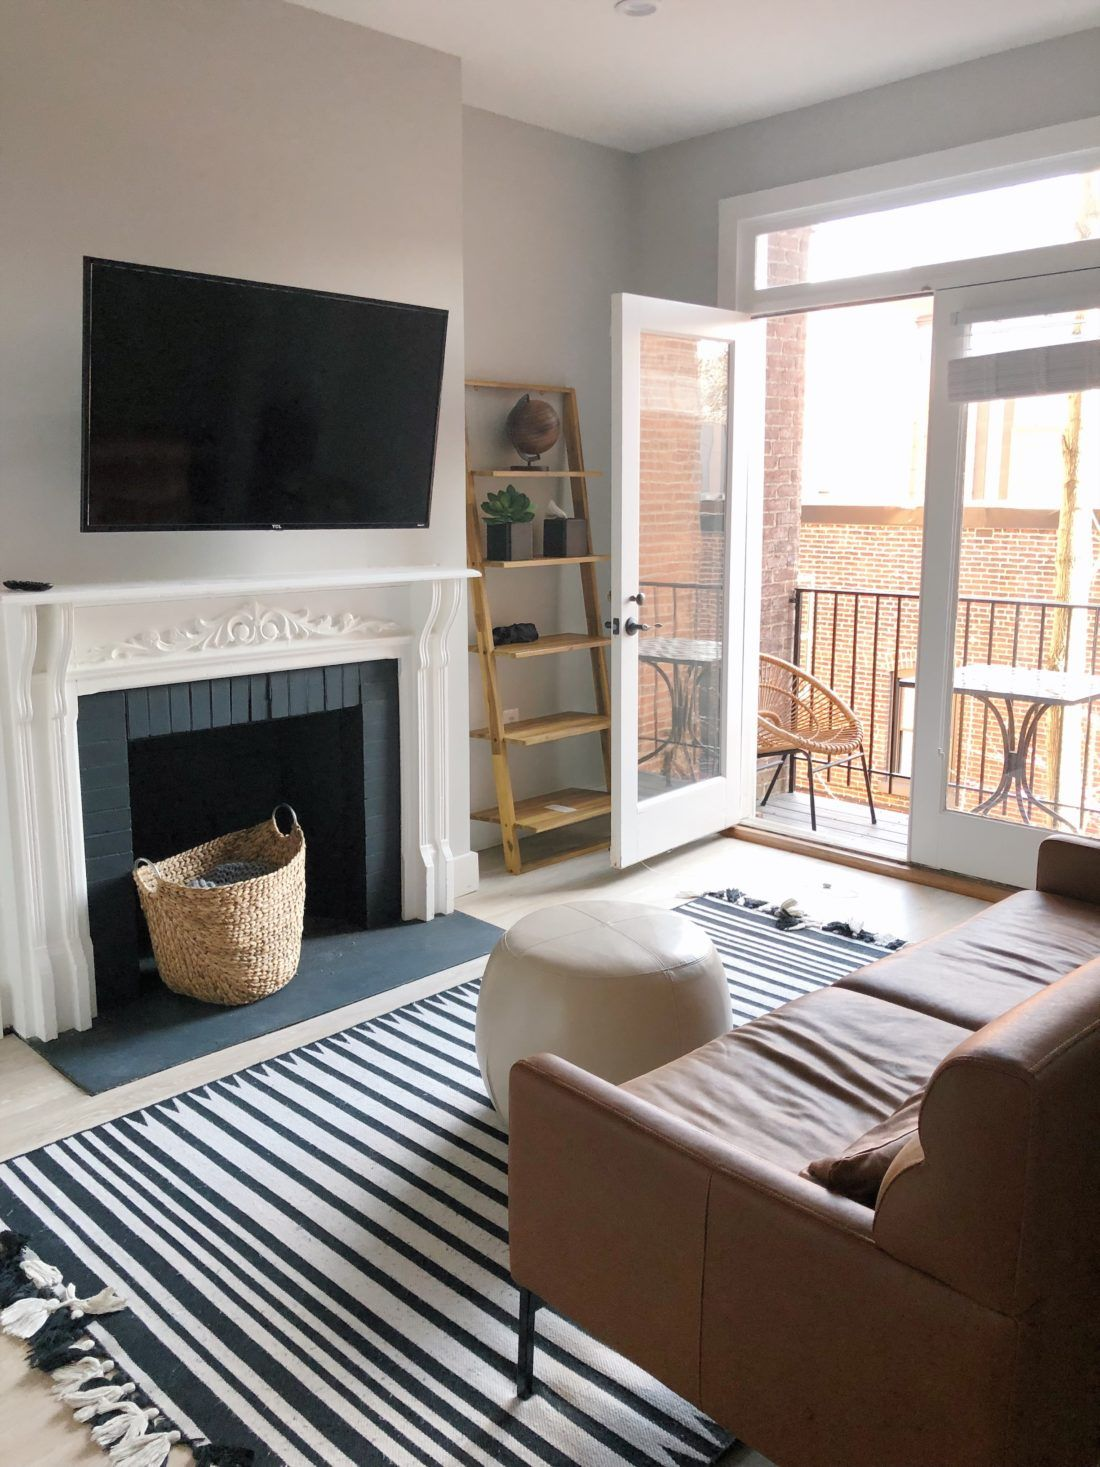 Washington Dc Outfits And Travel Guide With A Baby Dc Apartments Washington Dc Apartment Apartment